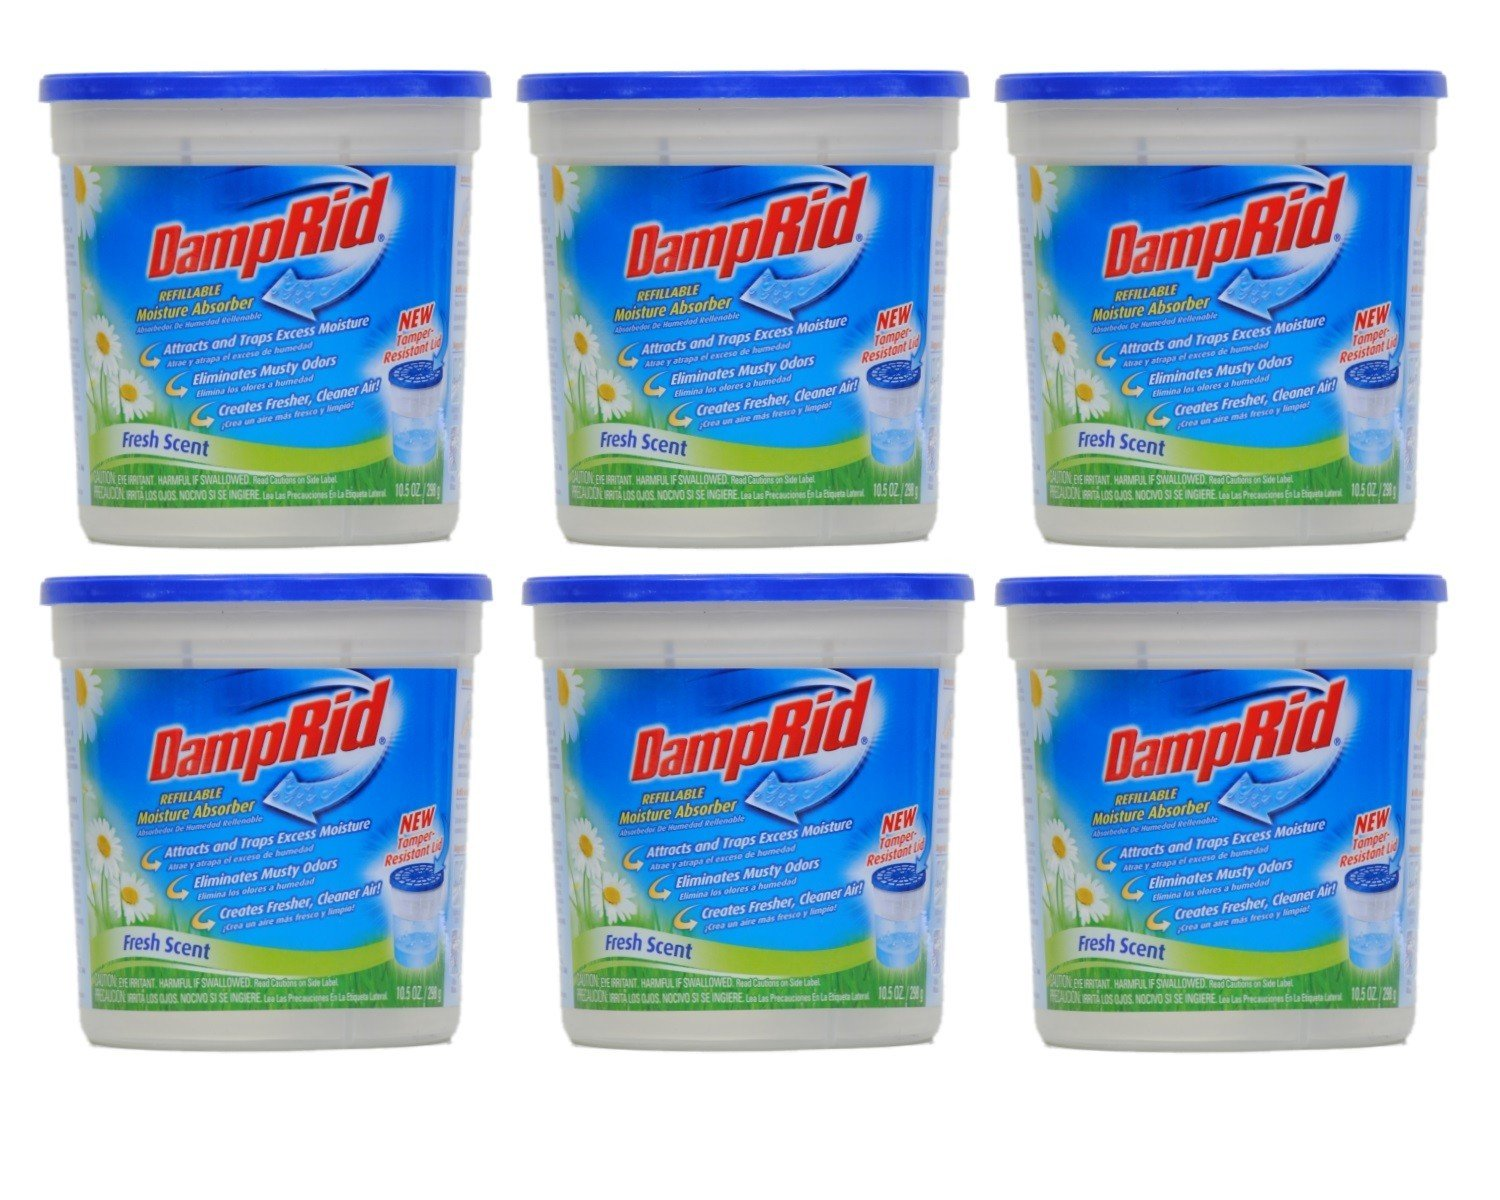 DampRid Damprid moisture absorber fresh scent, 10.5 Ounce, Pack of 6 by DampRid